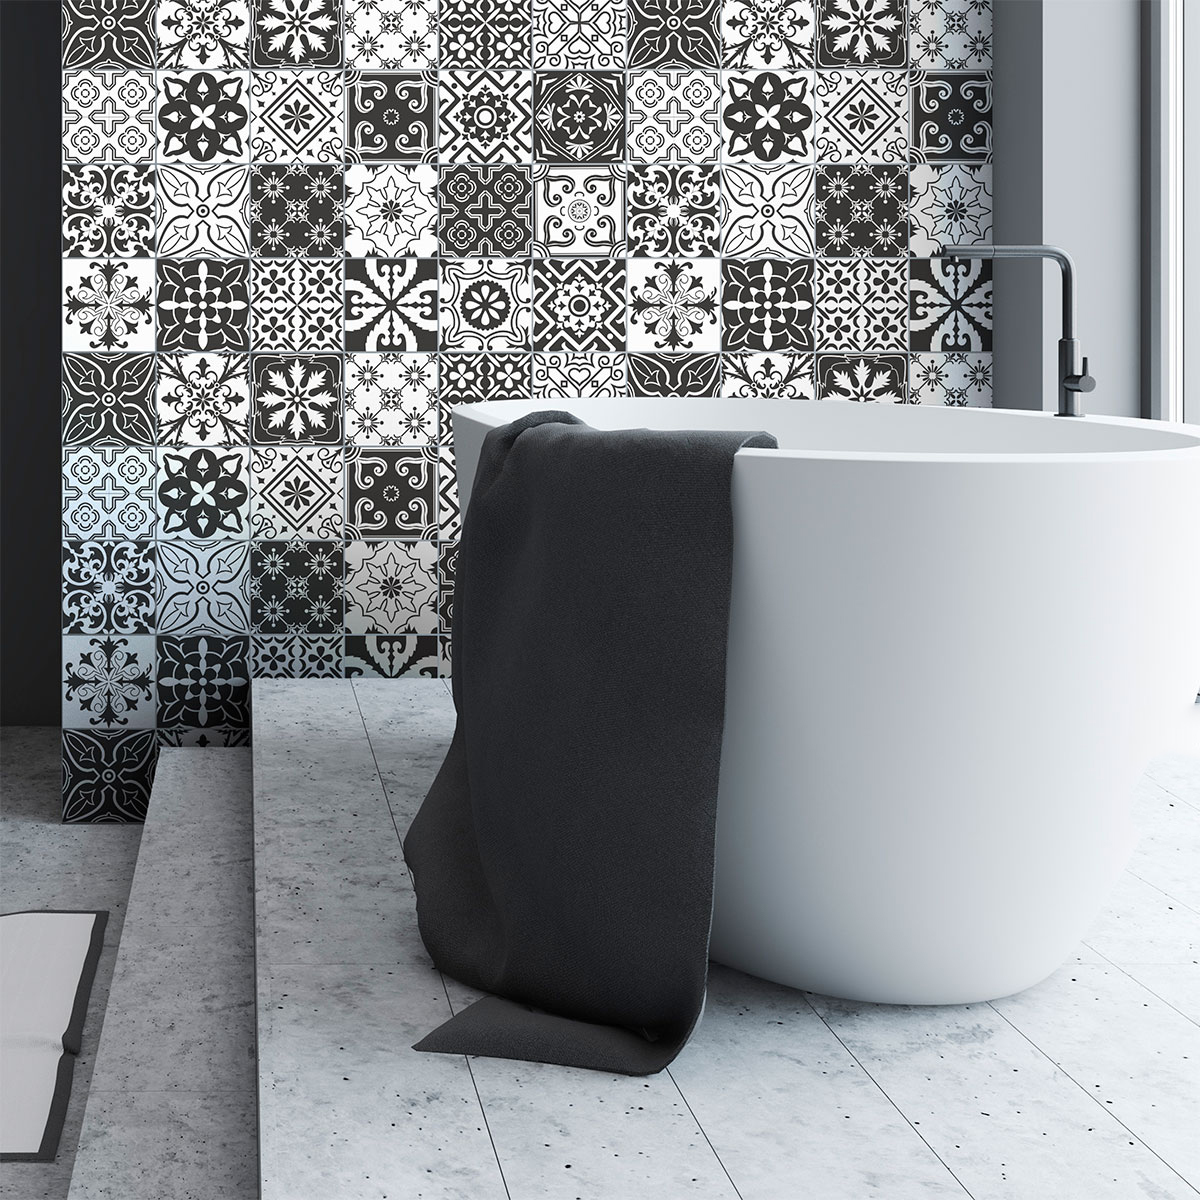 24 stickers carrelages azulejos amali da salle de bain et wc salle de bain ambiance sticker. Black Bedroom Furniture Sets. Home Design Ideas